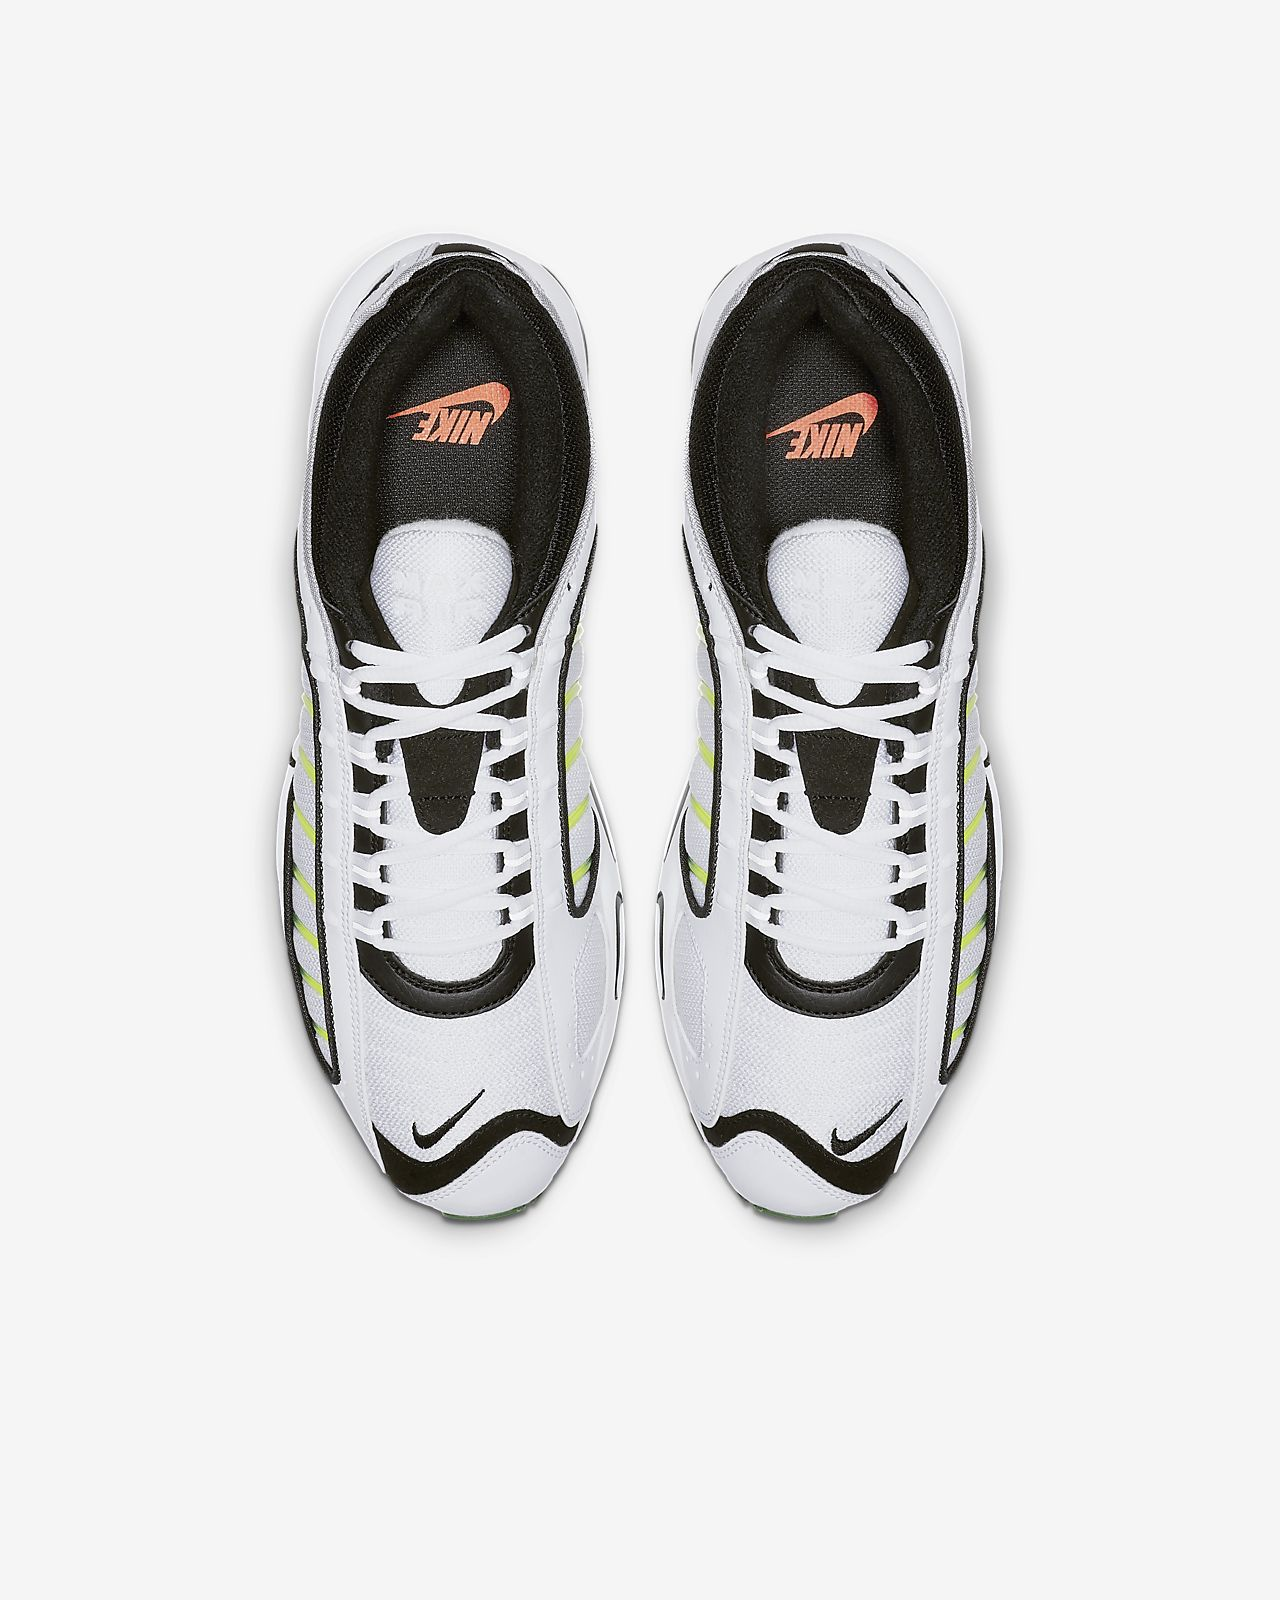 timeless design 47ac6 92393 ... Nike Air Max Tailwind IV Men s Shoe